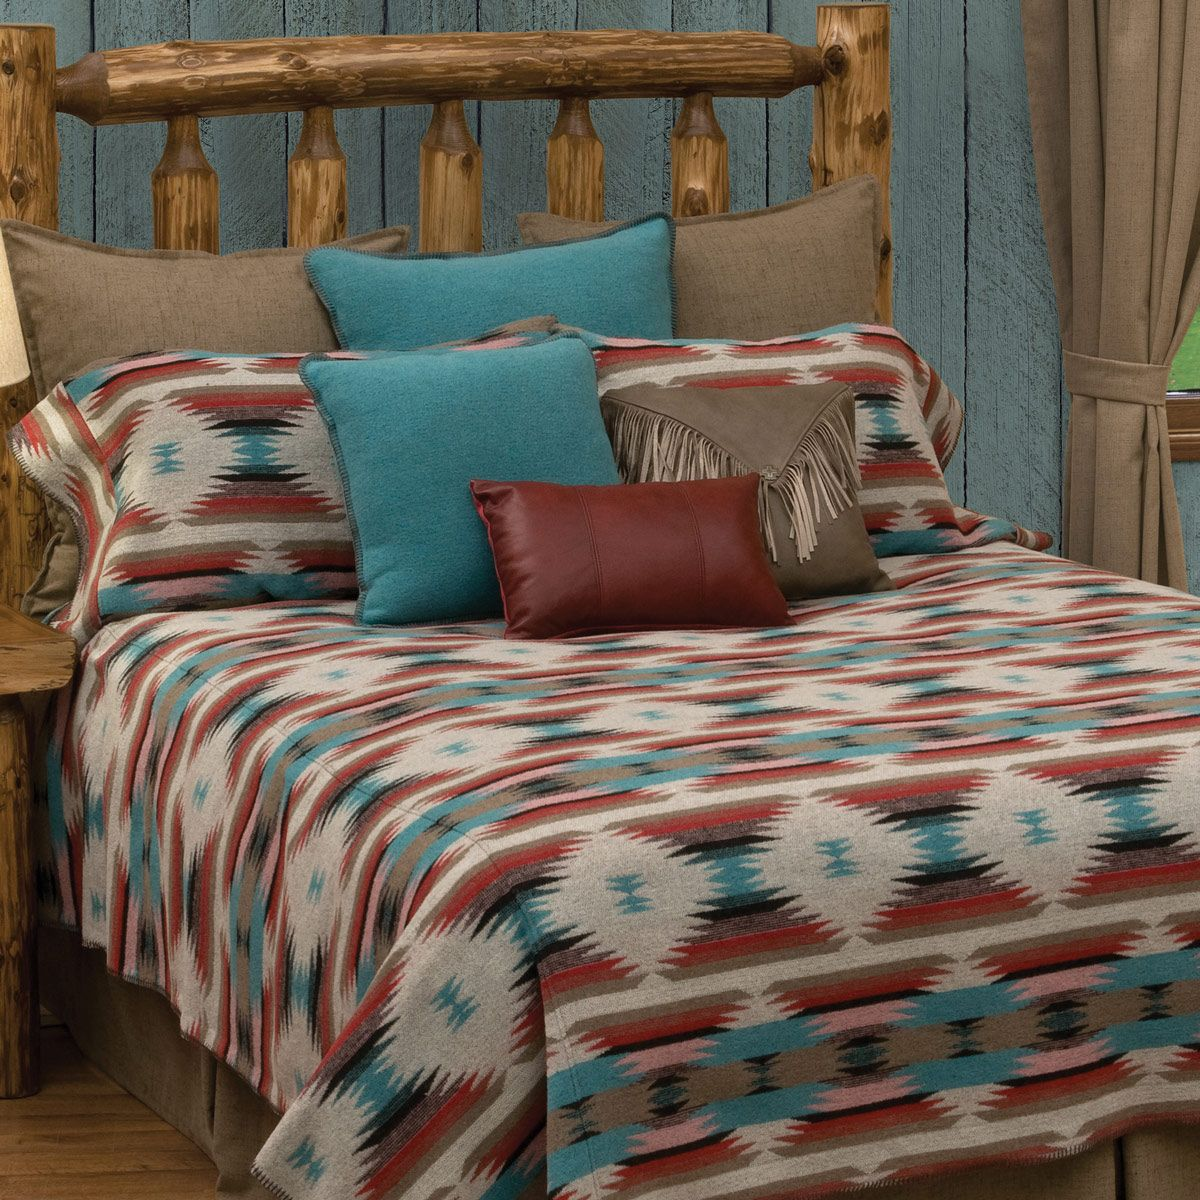 Painted Sky Value Bed Set - Queen